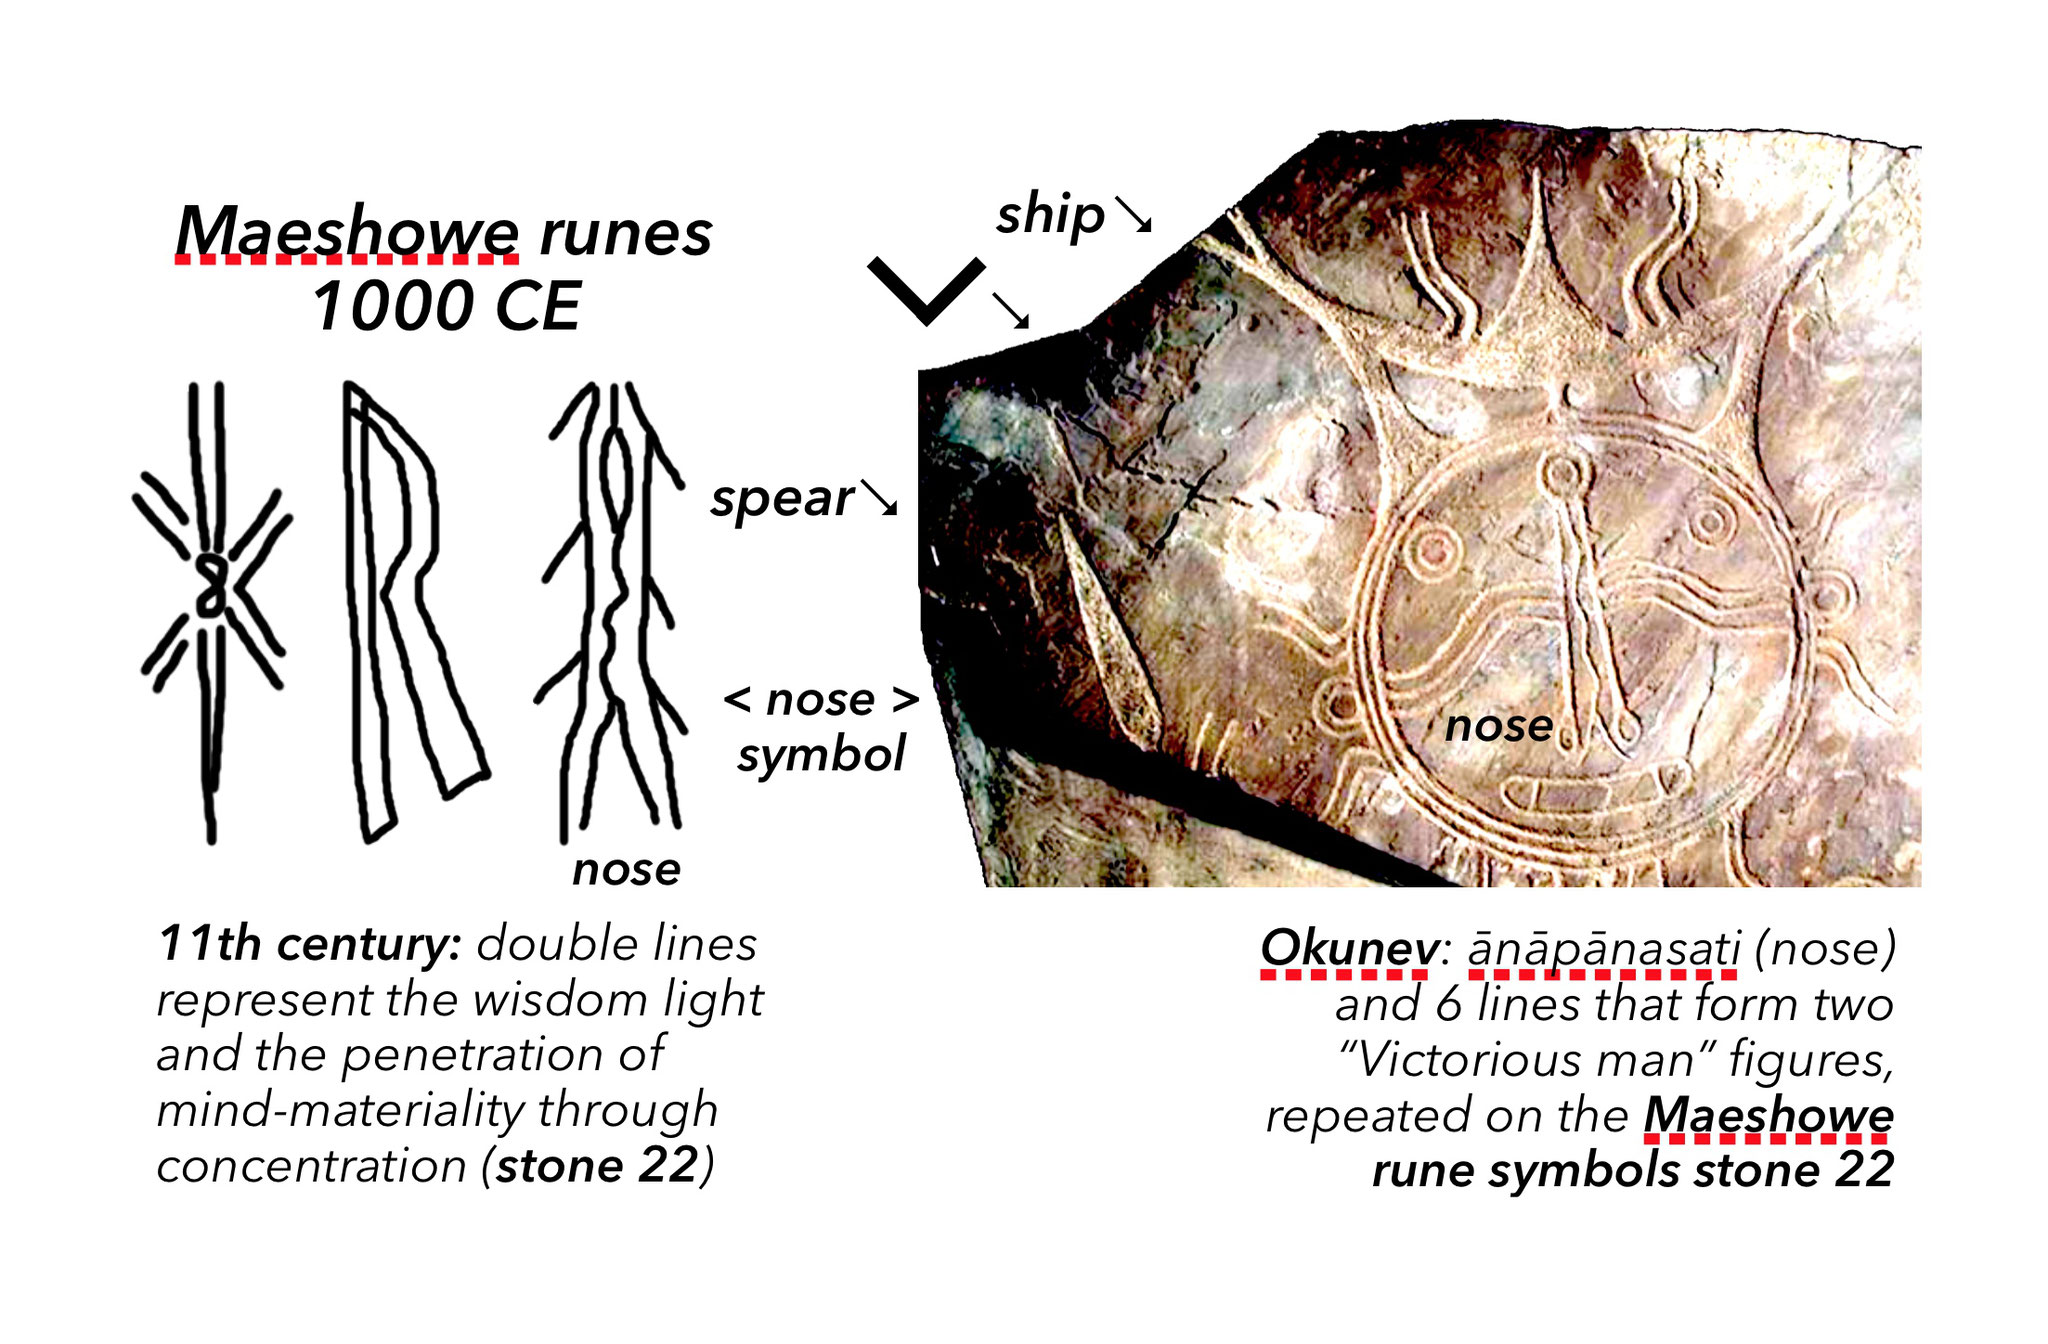 "The ""8"" of the Phaistos warrior still used in 11th-century Maeshowe inscriptions which are closely linked to Okunev images from Siberia, were both sites visited by envoys of Ashoka c. 250 BC?"